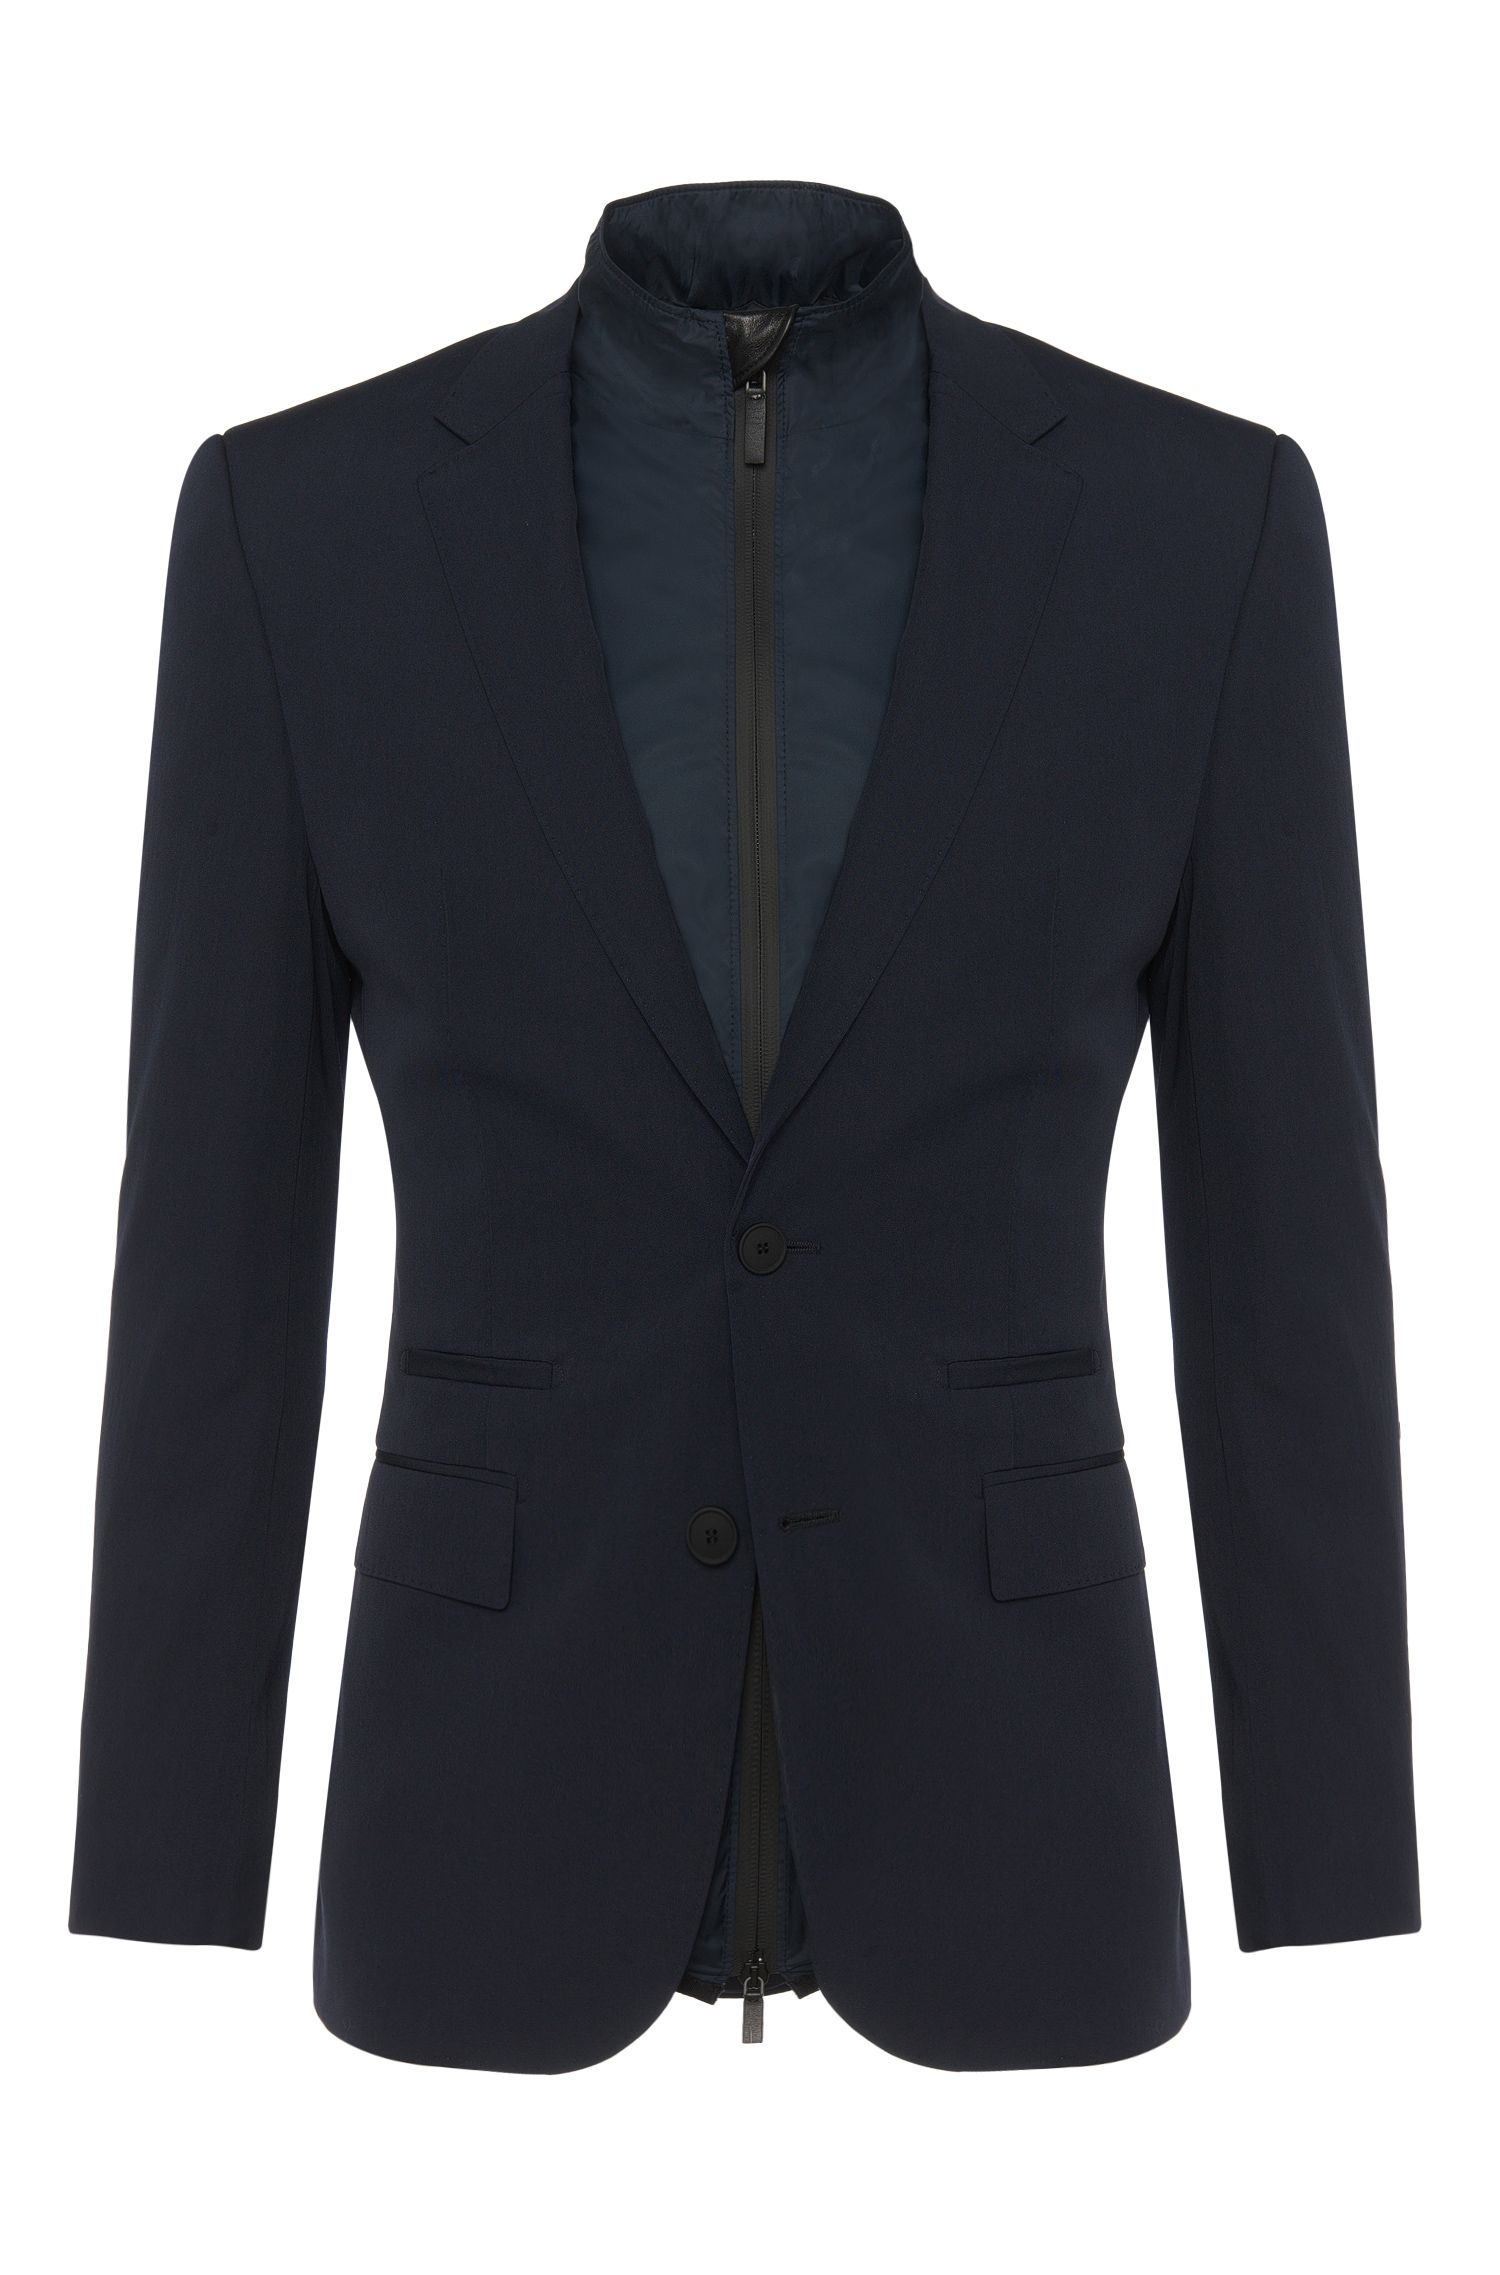 'T-Handson' | Slim Fit, Stretch Italian Virgin Wool Sport Coat, Removable Inner Jacket